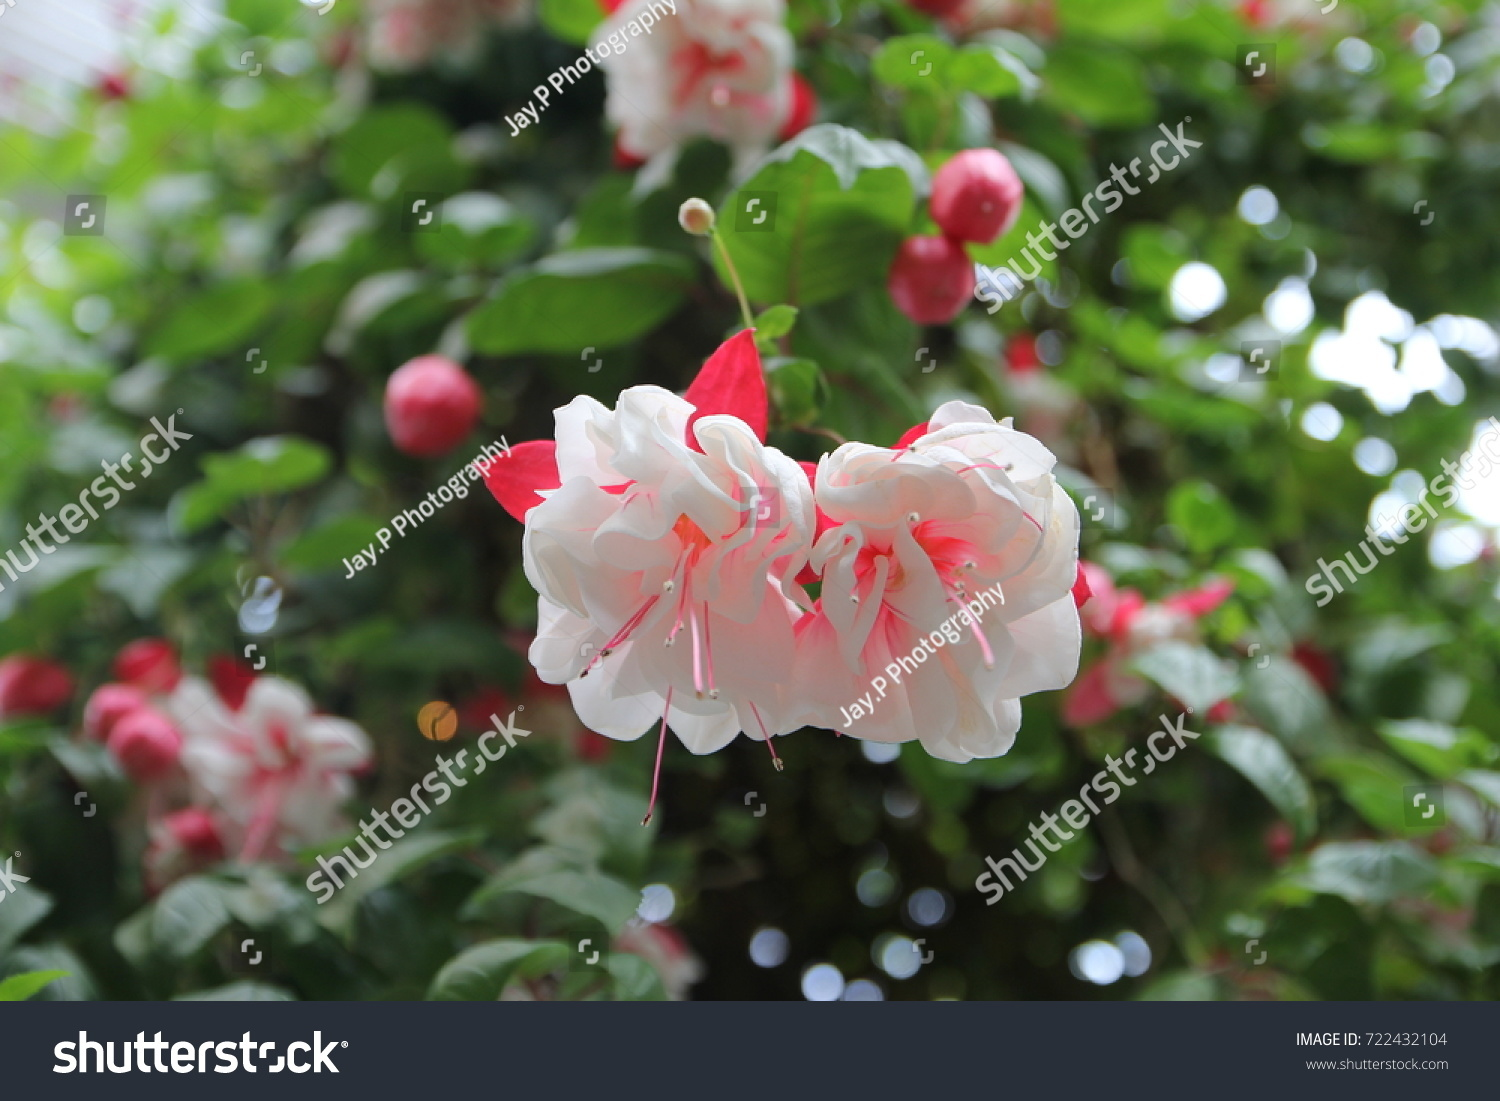 One most beautiful flowers begonia garden stock photo safe to use one of the most beautiful flowers in begonia garden of nabana no sato flower park in izmirmasajfo